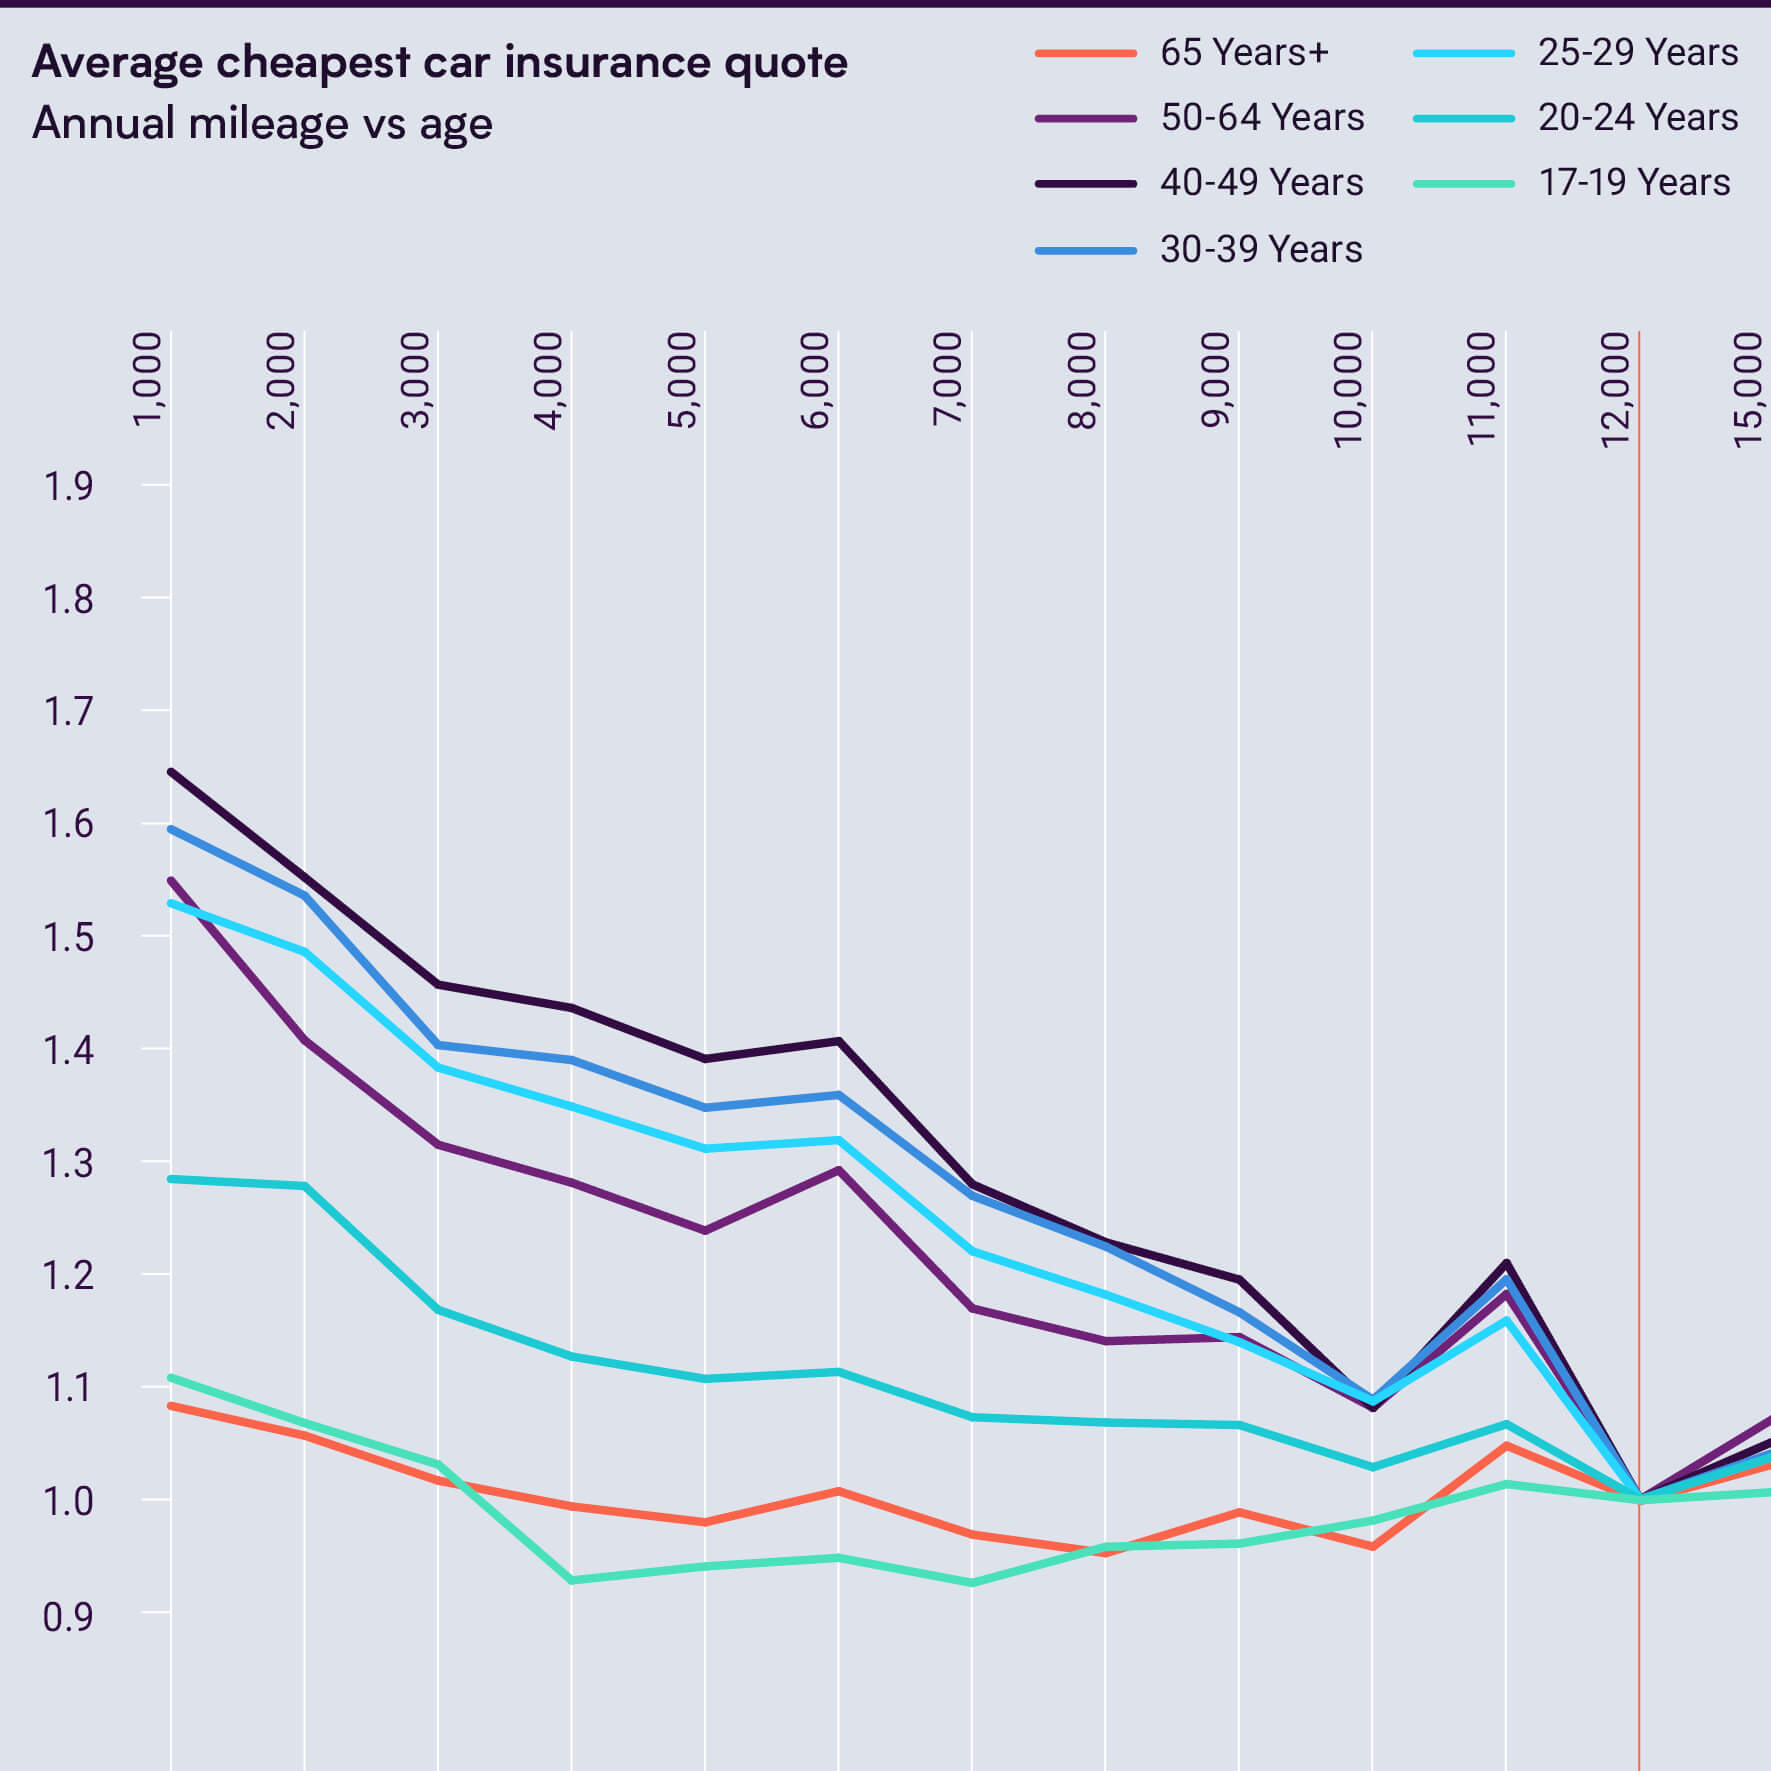 Graph of Cheapest Car Insurance Quote vs Annual Mileage Indexed to 1